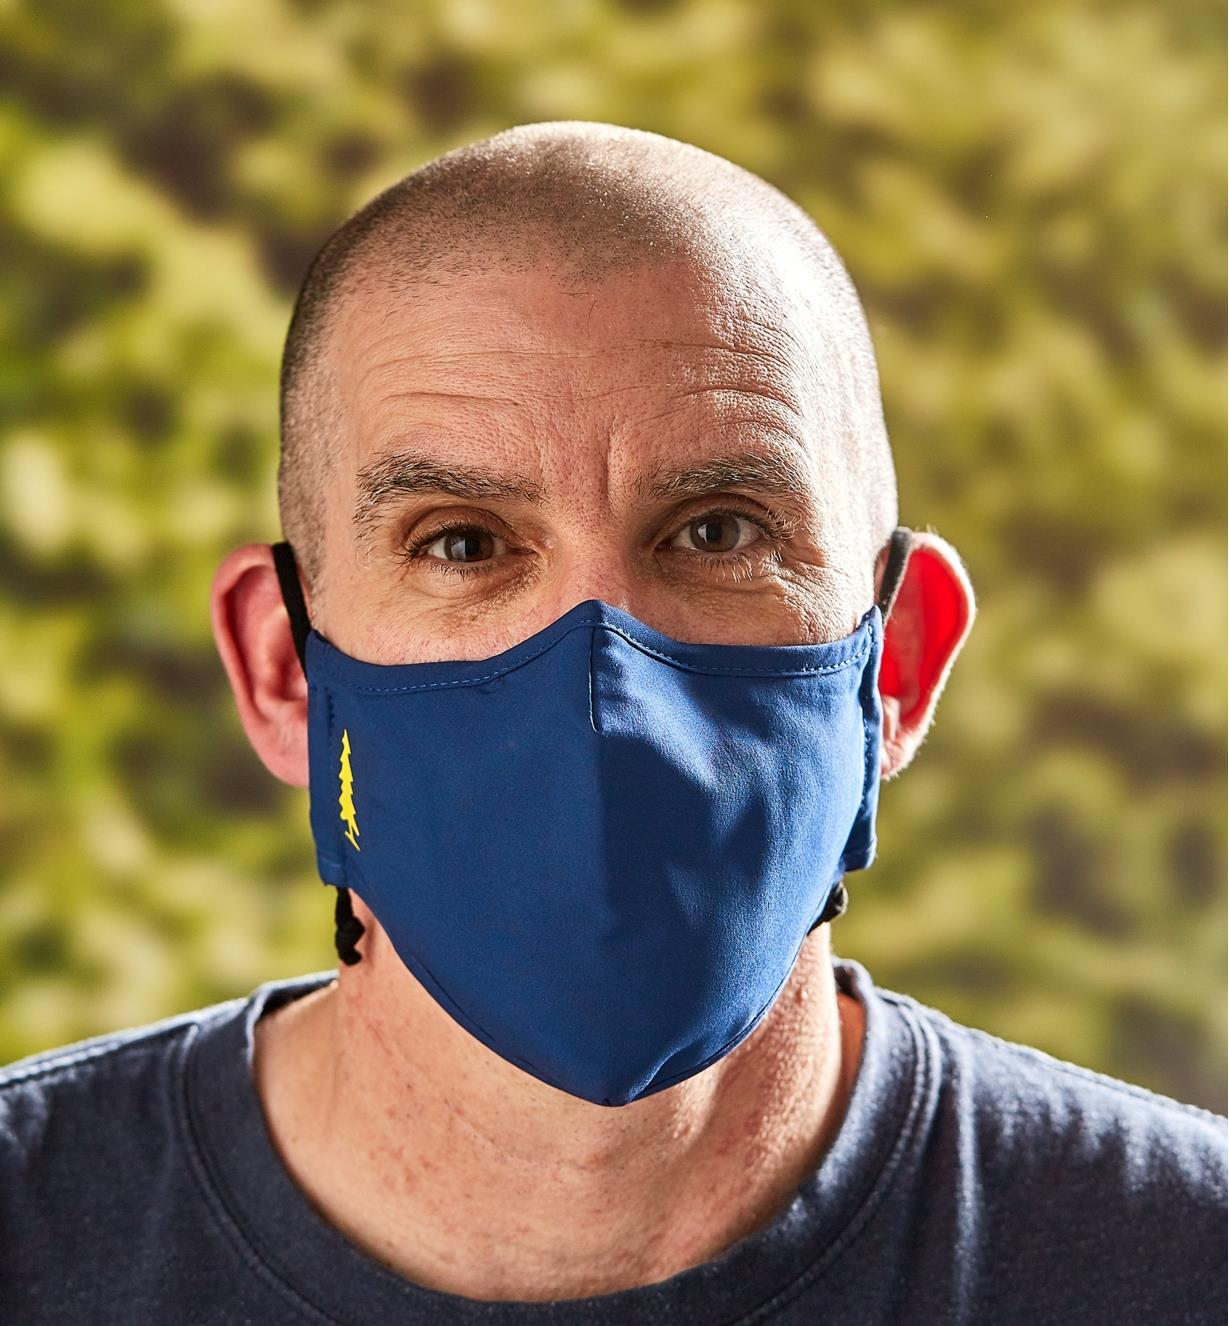 A front view of a man wearing a Lee Valley face mask